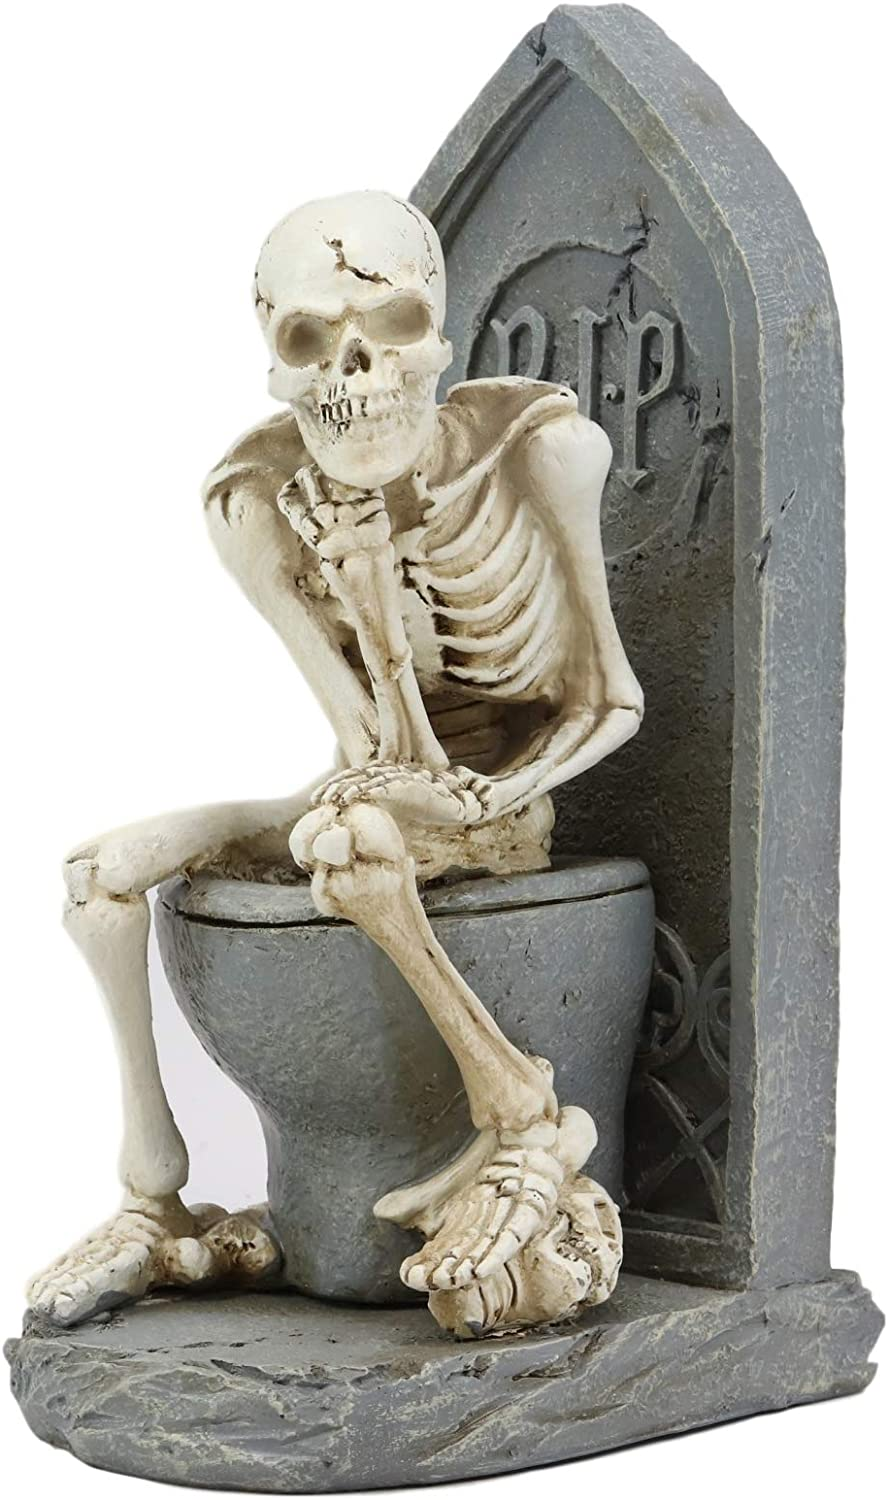 """Ebros Rest in Peace Constipated Skeleton Sitting On Graveyard Toilet in Le Penseur Thinker Pose Statue 8.75"""" H Halloween Ossuary Macabre Decor Collectible Figurine"""